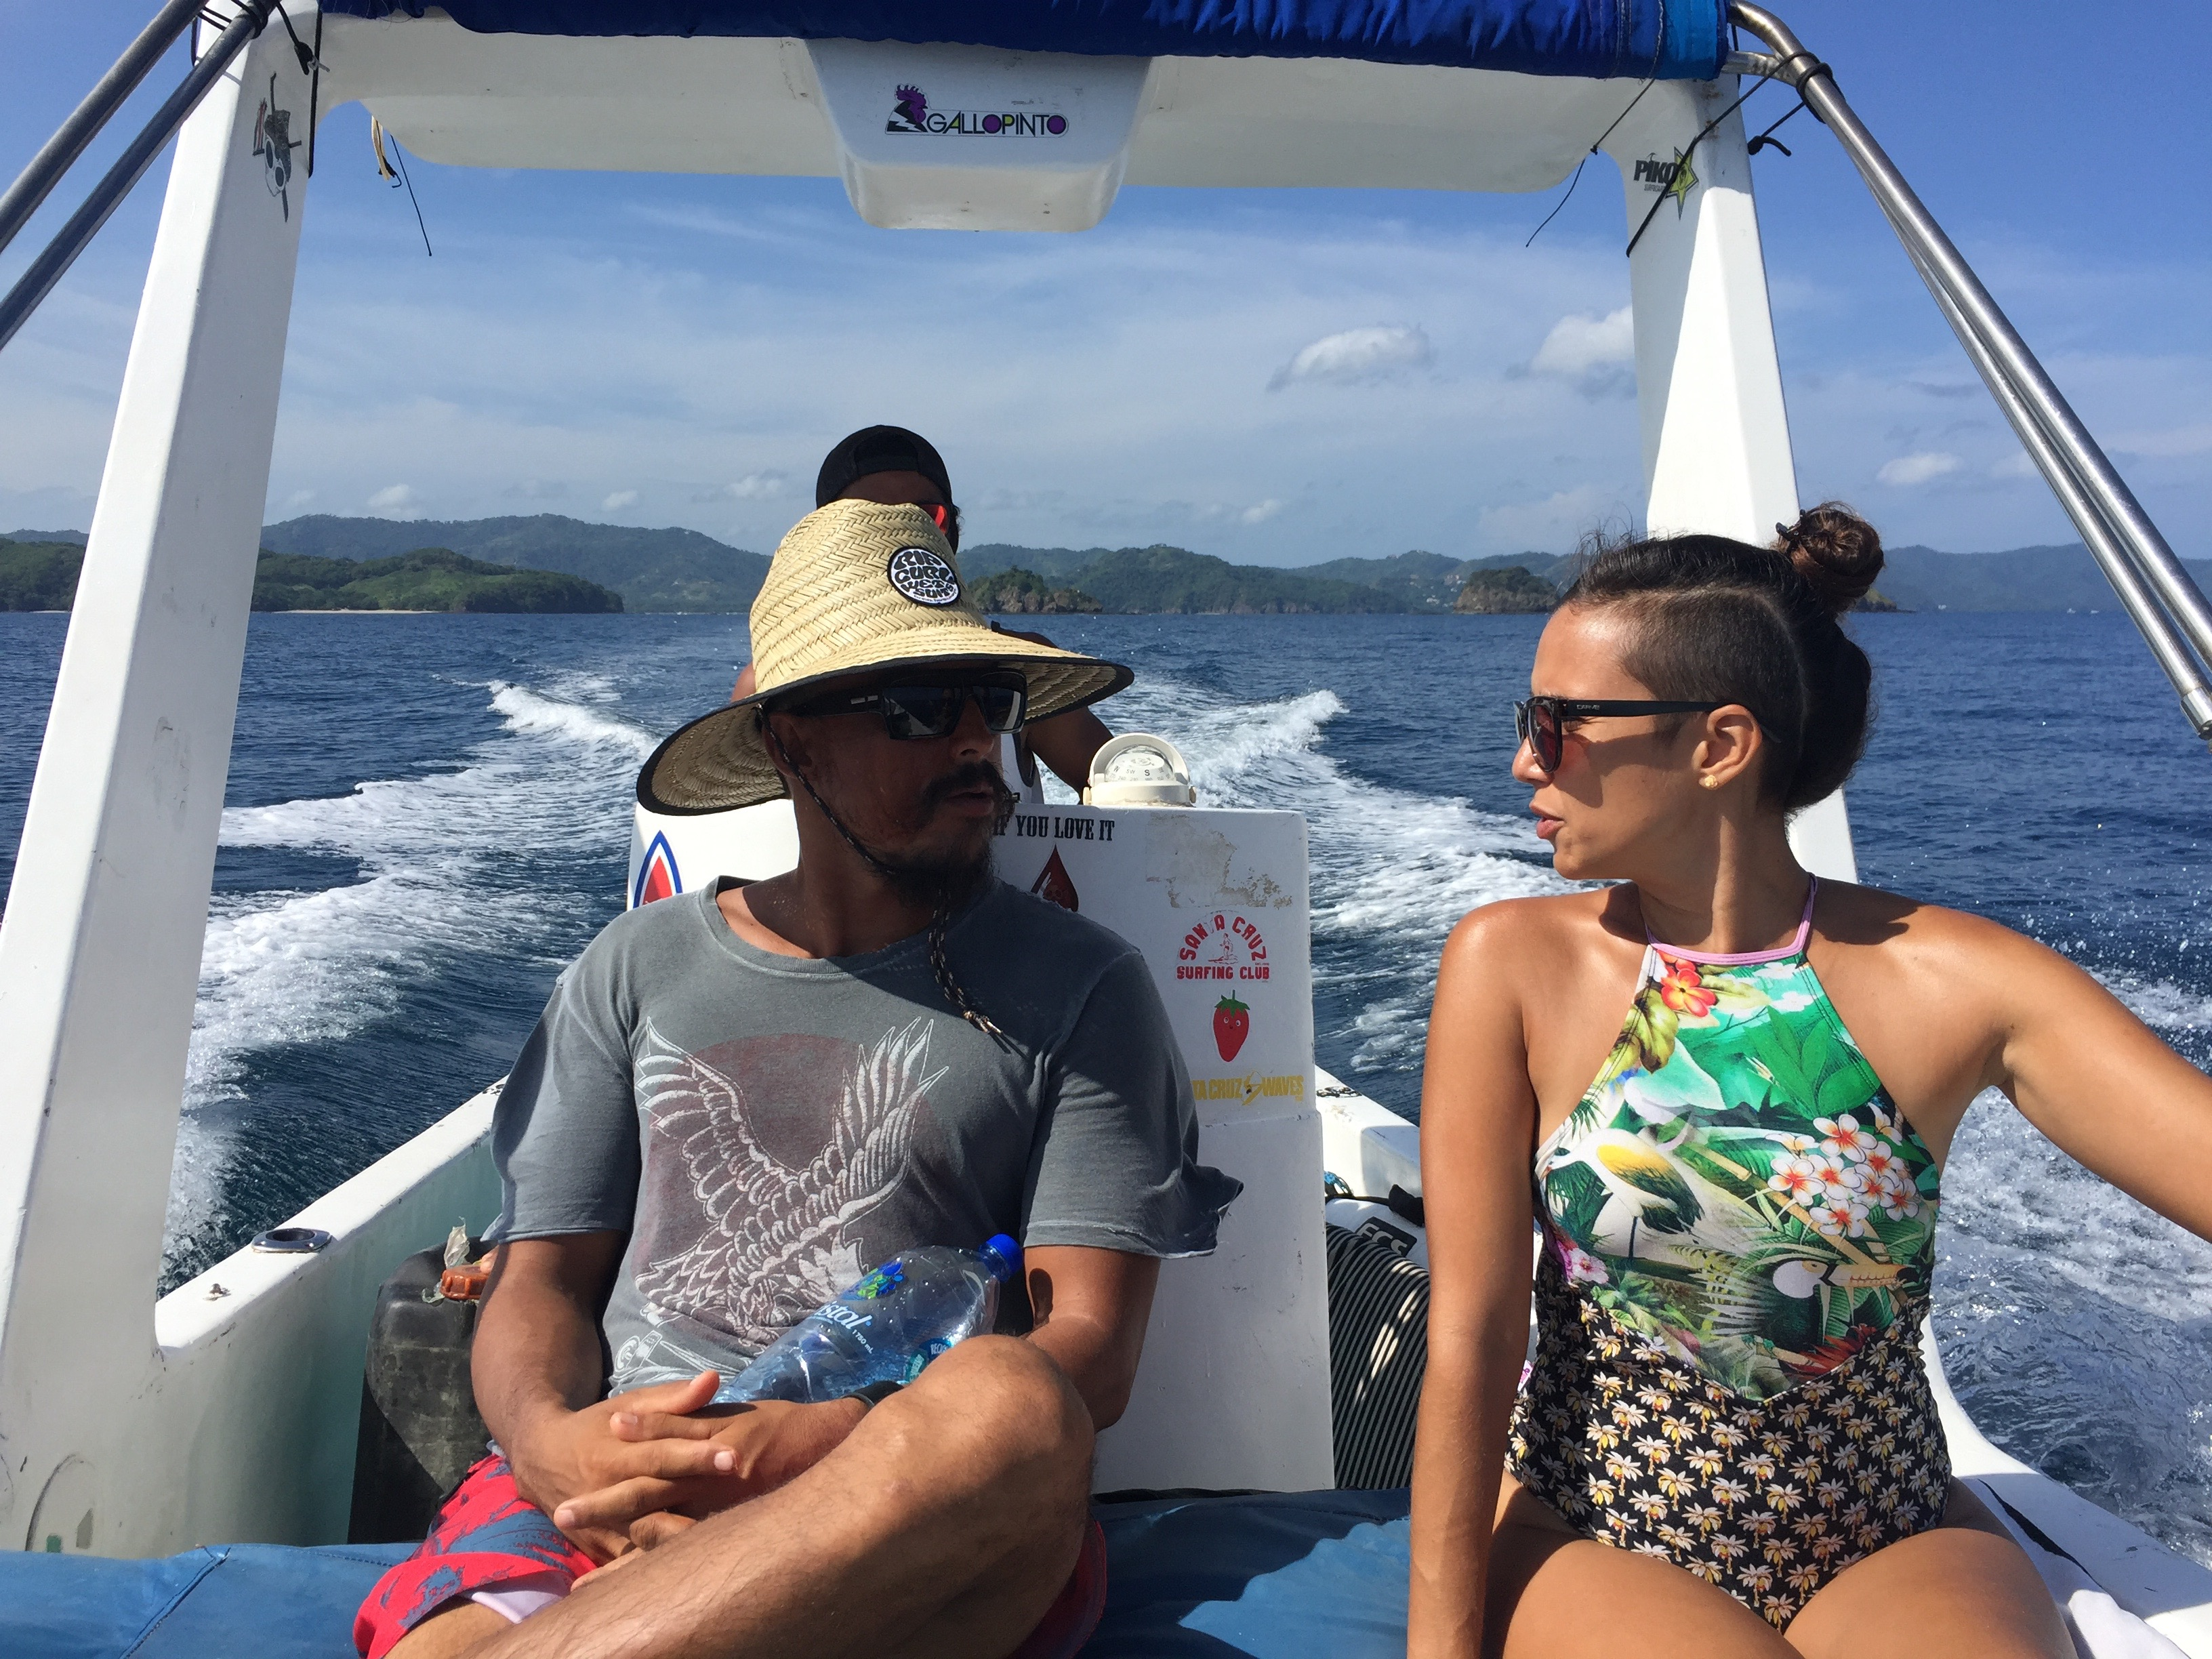 A Costa Rican couple rides a boat to go surfing.